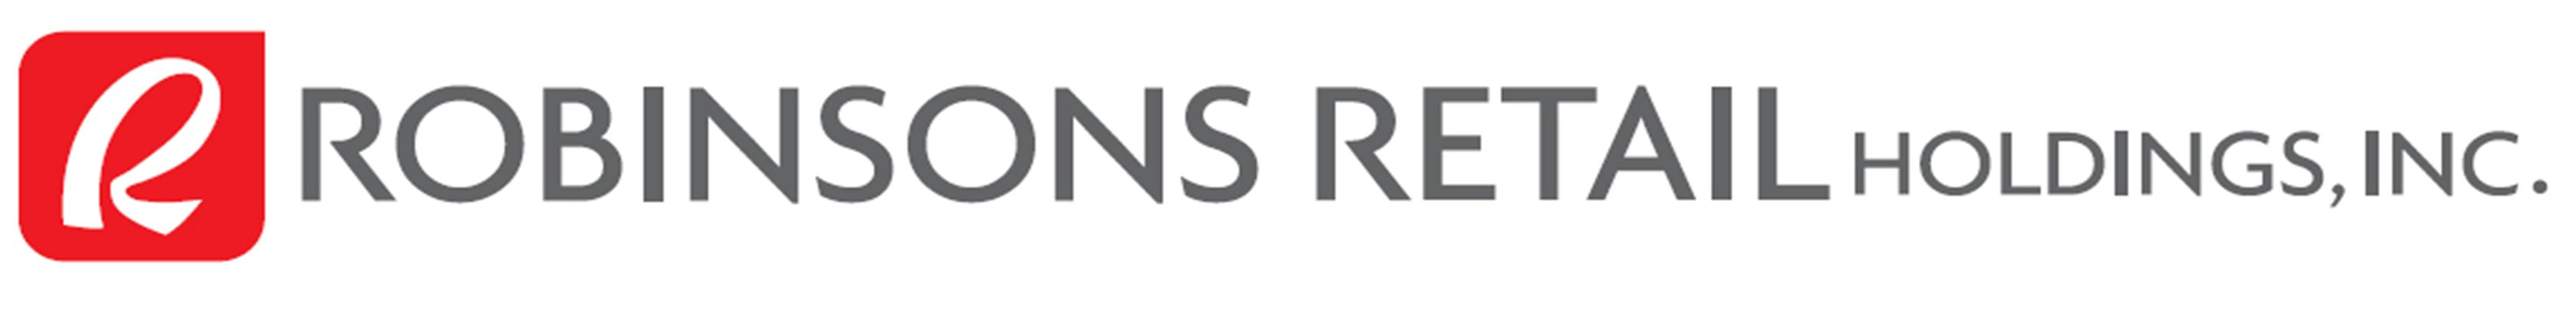 Robinsons Retail Holdings, Inc.